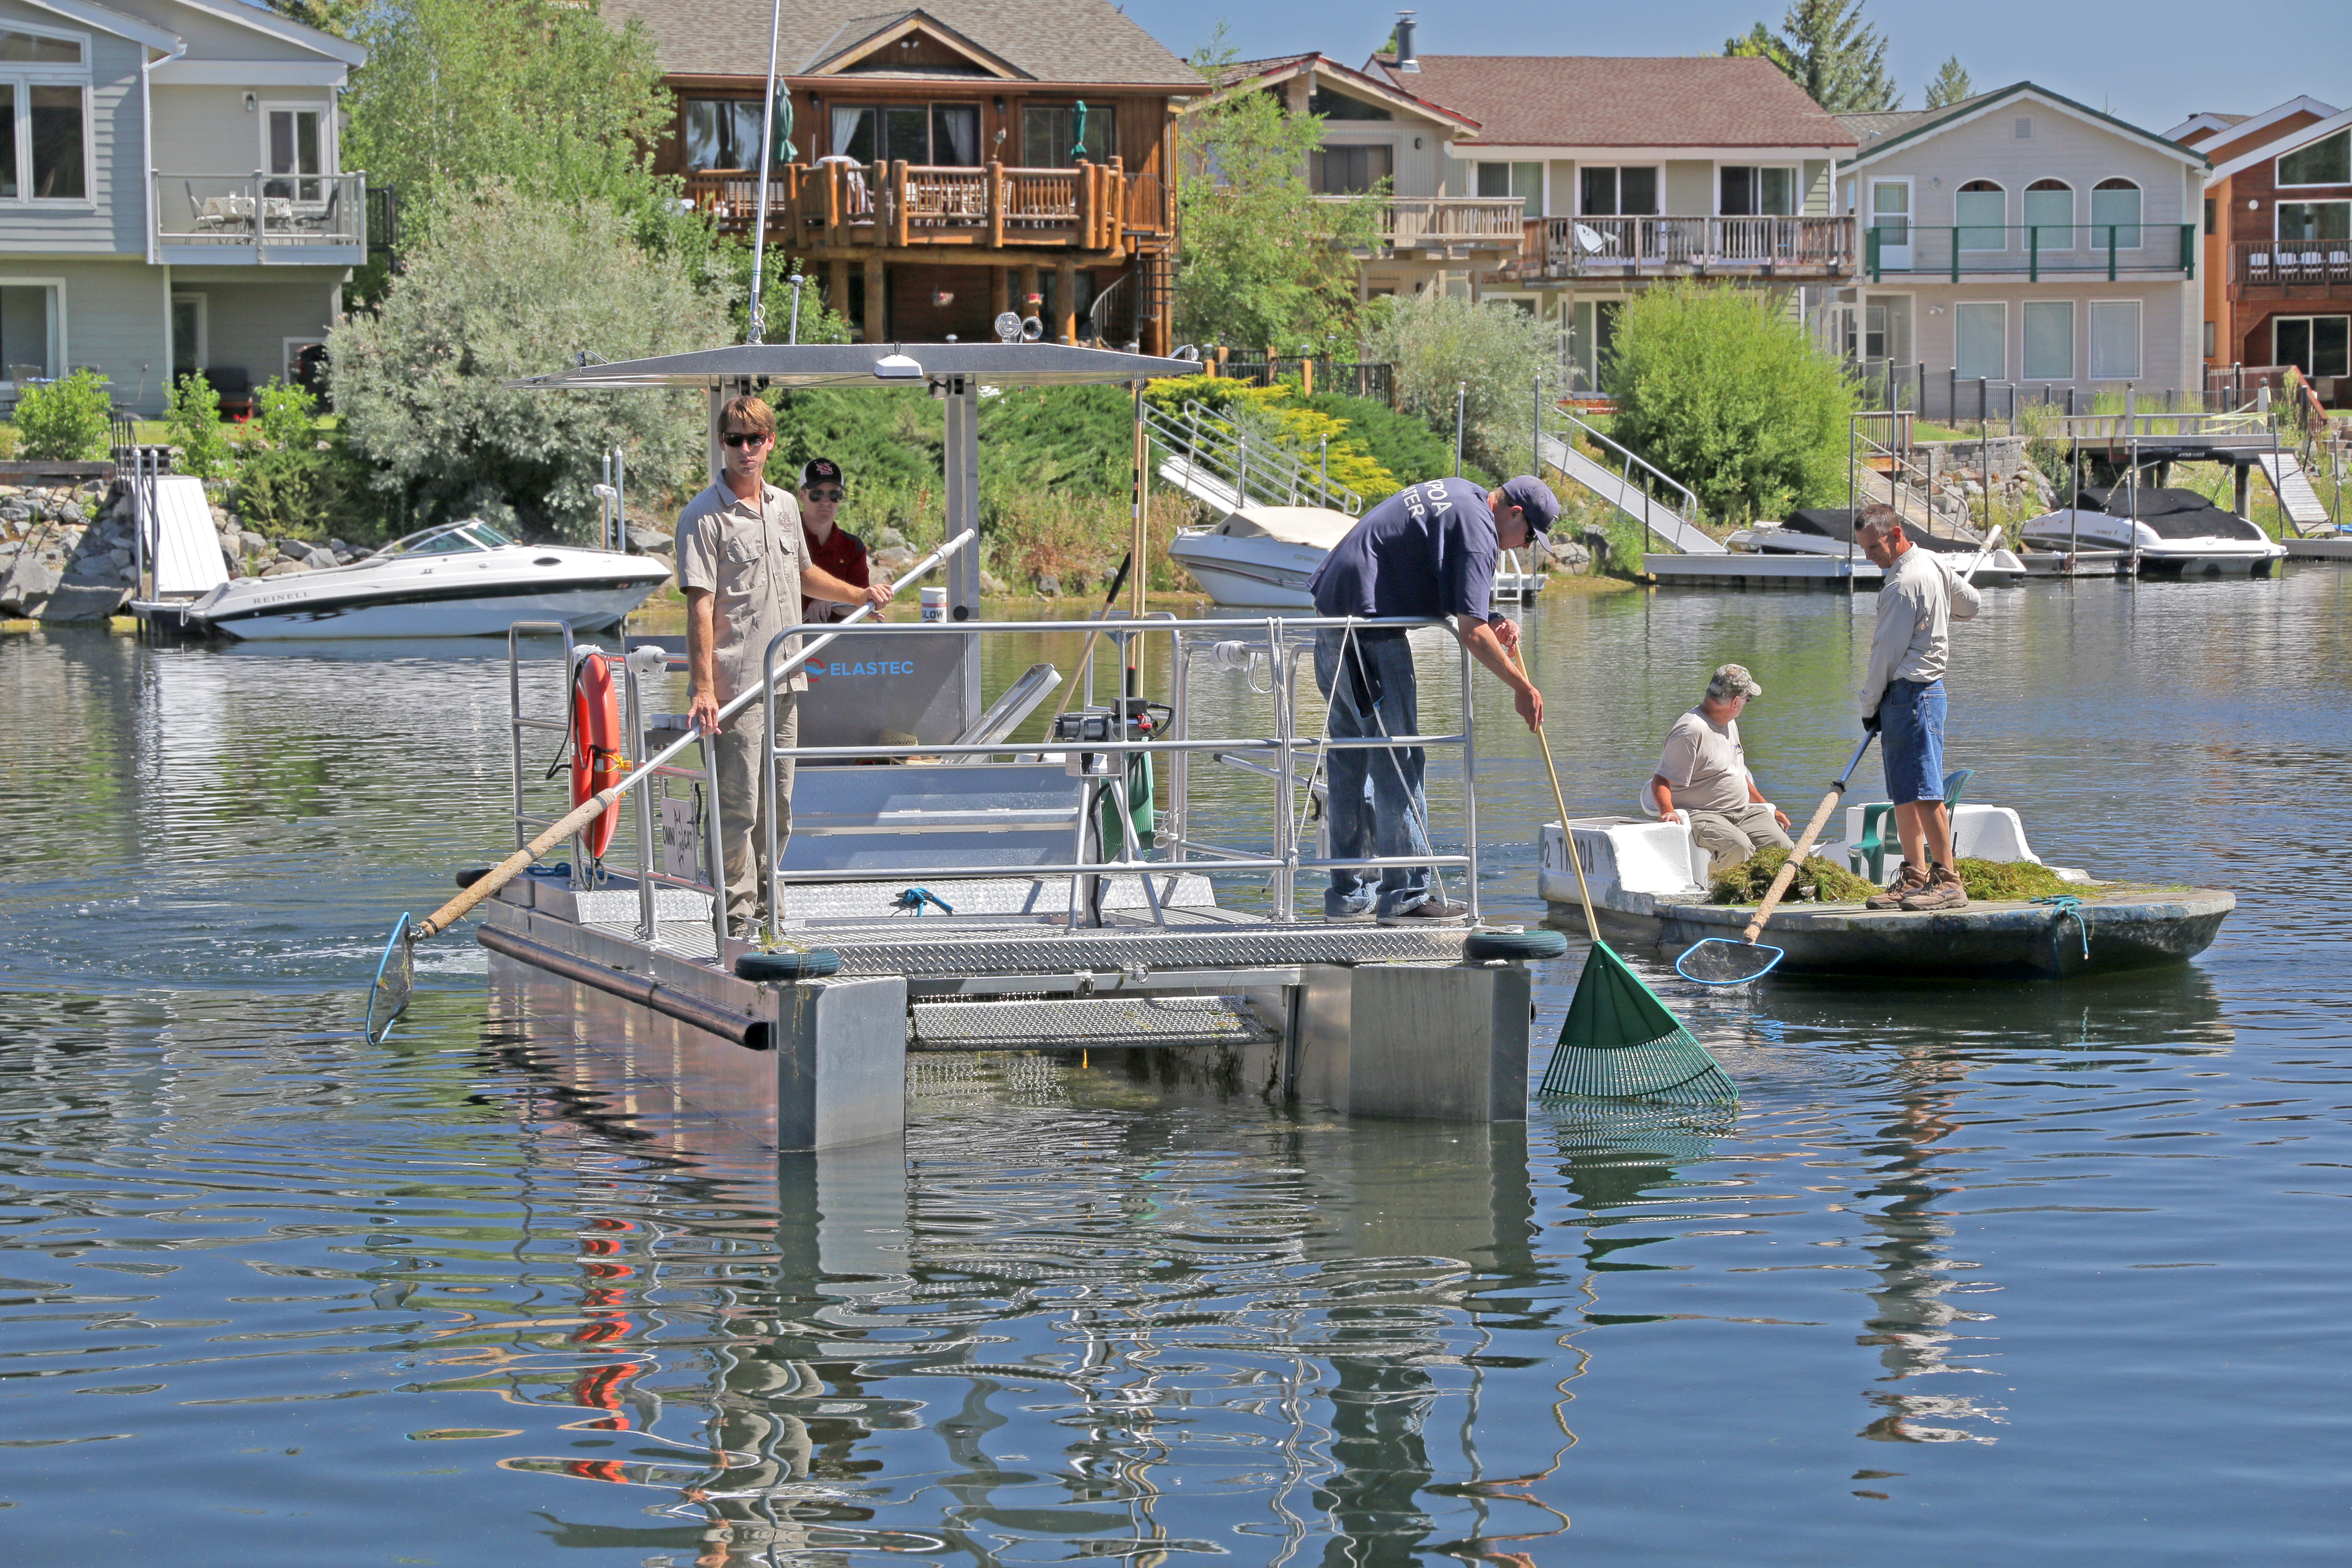 To learn more about the efforts in the Keys to combat aquatic invasive species, the community is invited to attend a public workshop on November 1, 6 to 8 p.m. at the South Tahoe Public Utility District Building, 1275 Meadow Crest Drive. Find out more at keysweedsmanagement.org